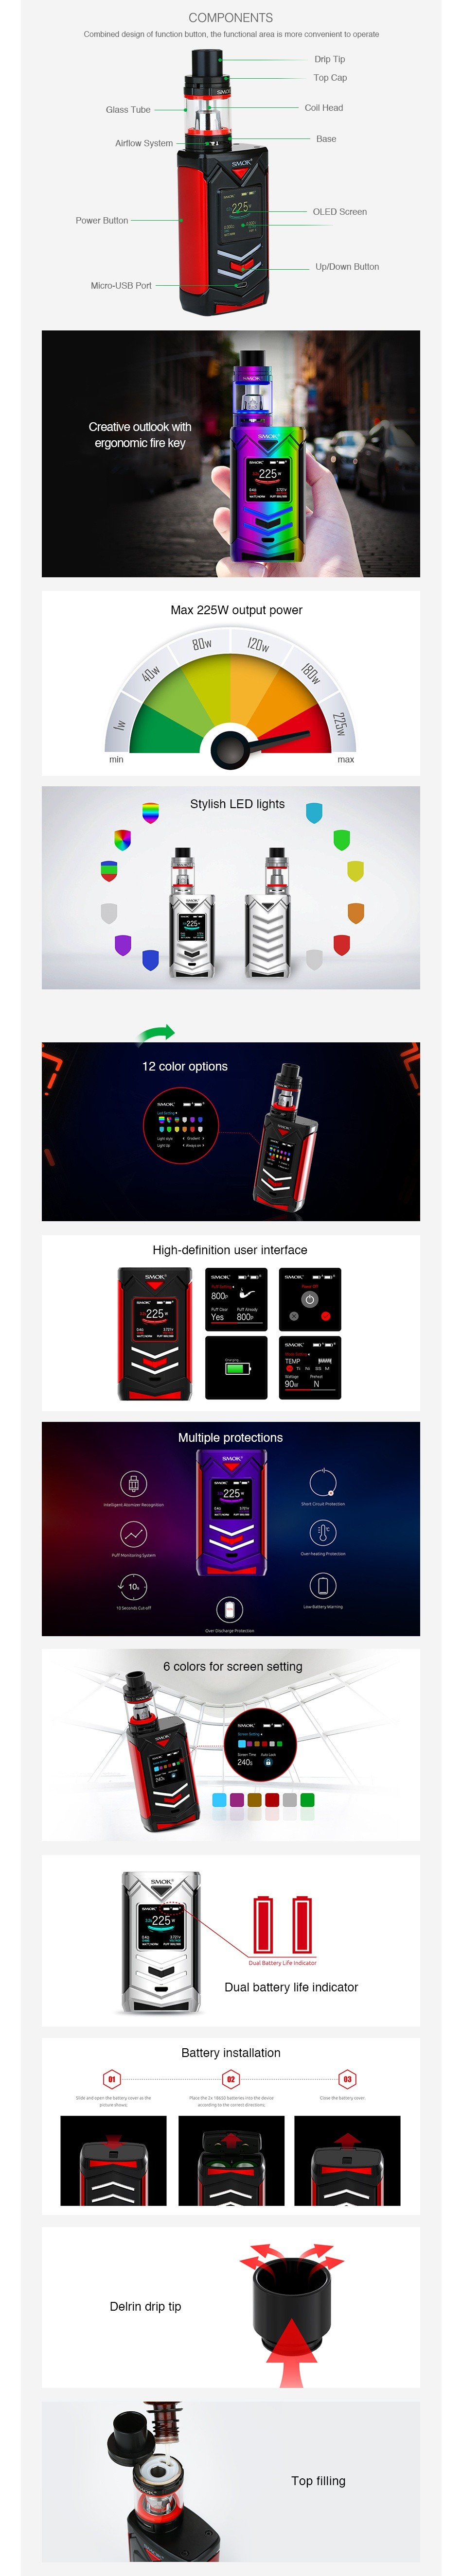 SMOK Veneno 225W TC Kit with TFV8 Big Baby SMOK  SMOK 225 225w 225 Blue red Black yellow Black Red SMOK SMOK 225w 225w 225w 225 Silver black Red gold Purple red 7 Colo